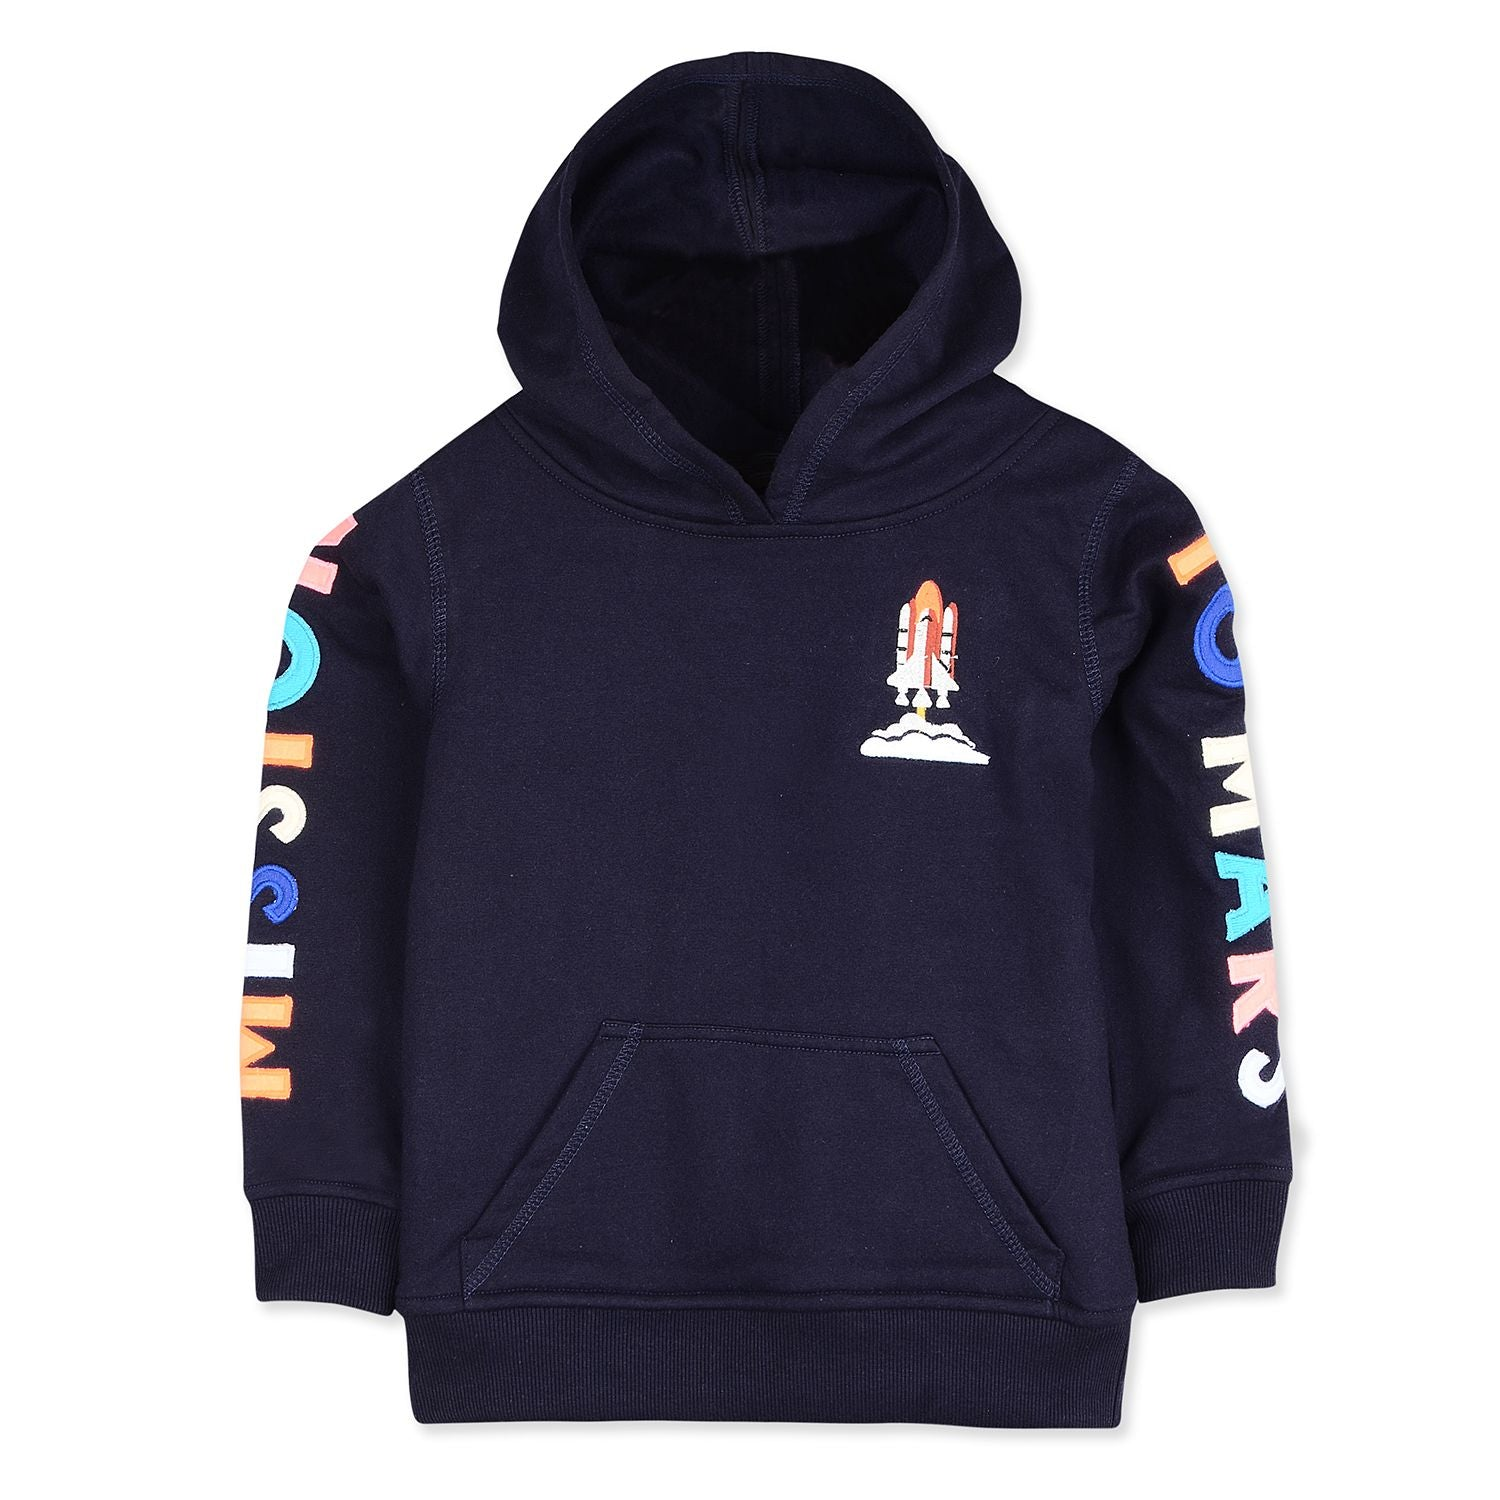 Mars applique Hoodie Sweatshirt for kids